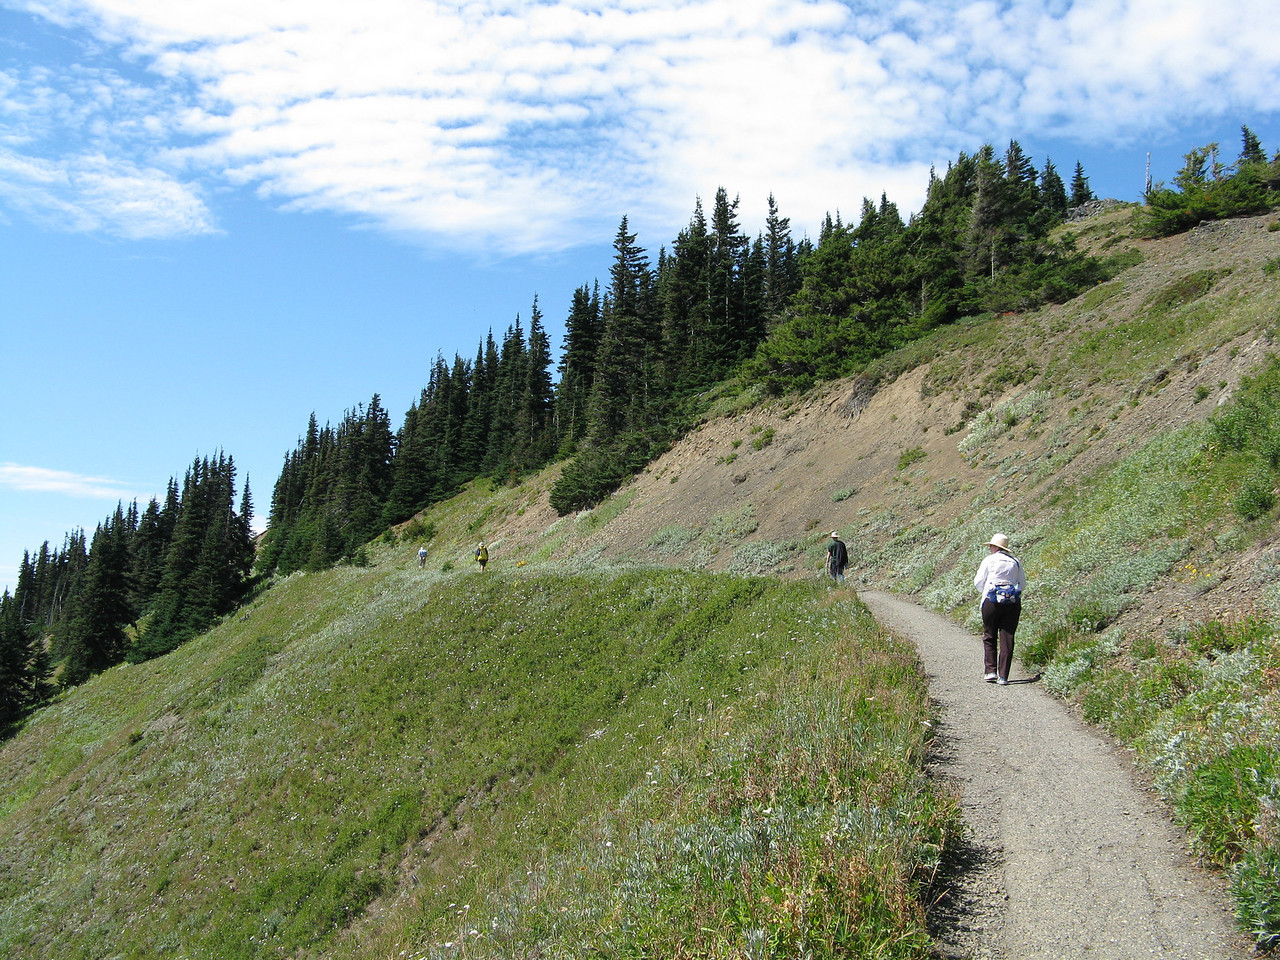 Mary traversing the mildly inclined trail across the hillside.